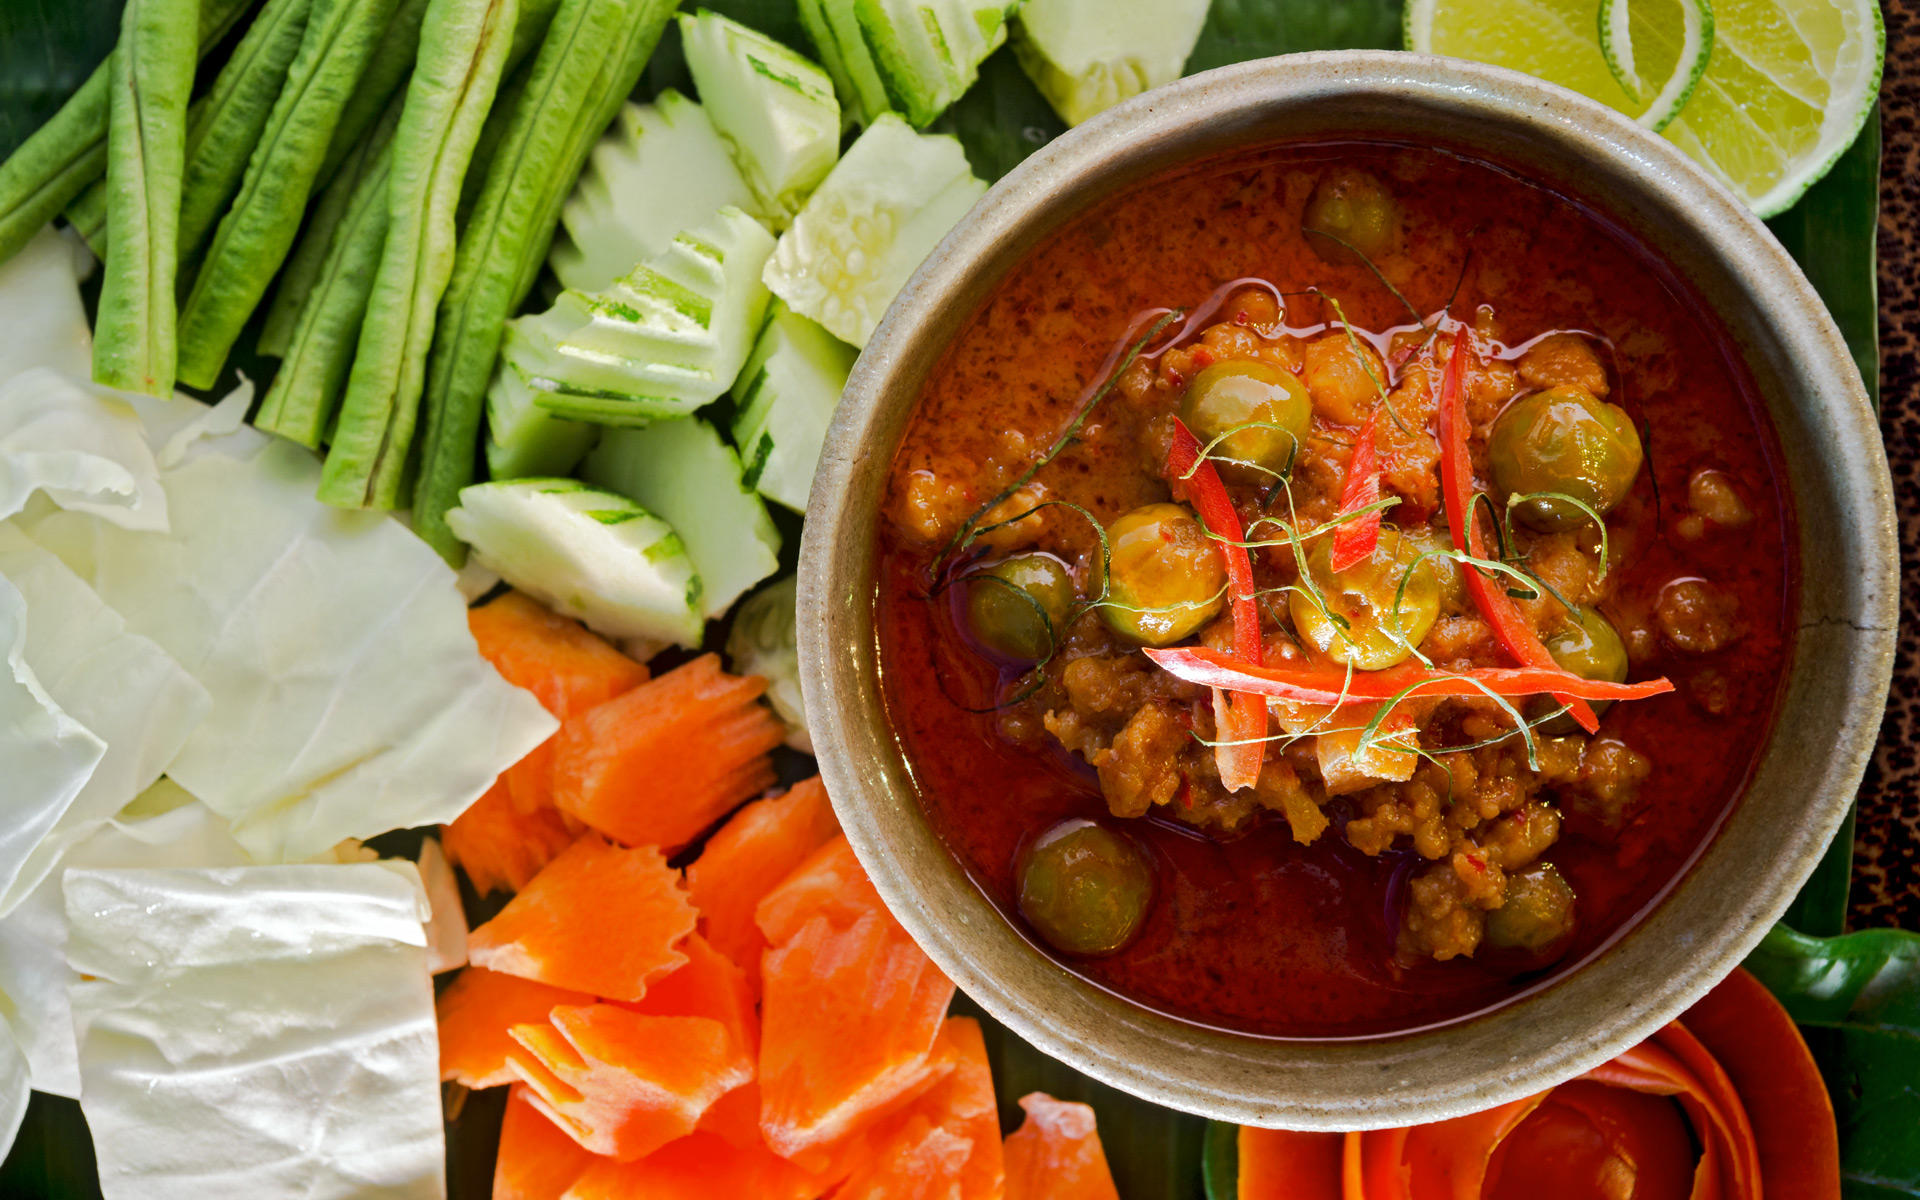 Prahok Kh'Tih. The Sugar Palm Restaurant & Bar. Authentic Cambodian food by chef Kethana with locations in Phnom Penh & Siem Reap, Cambodia.